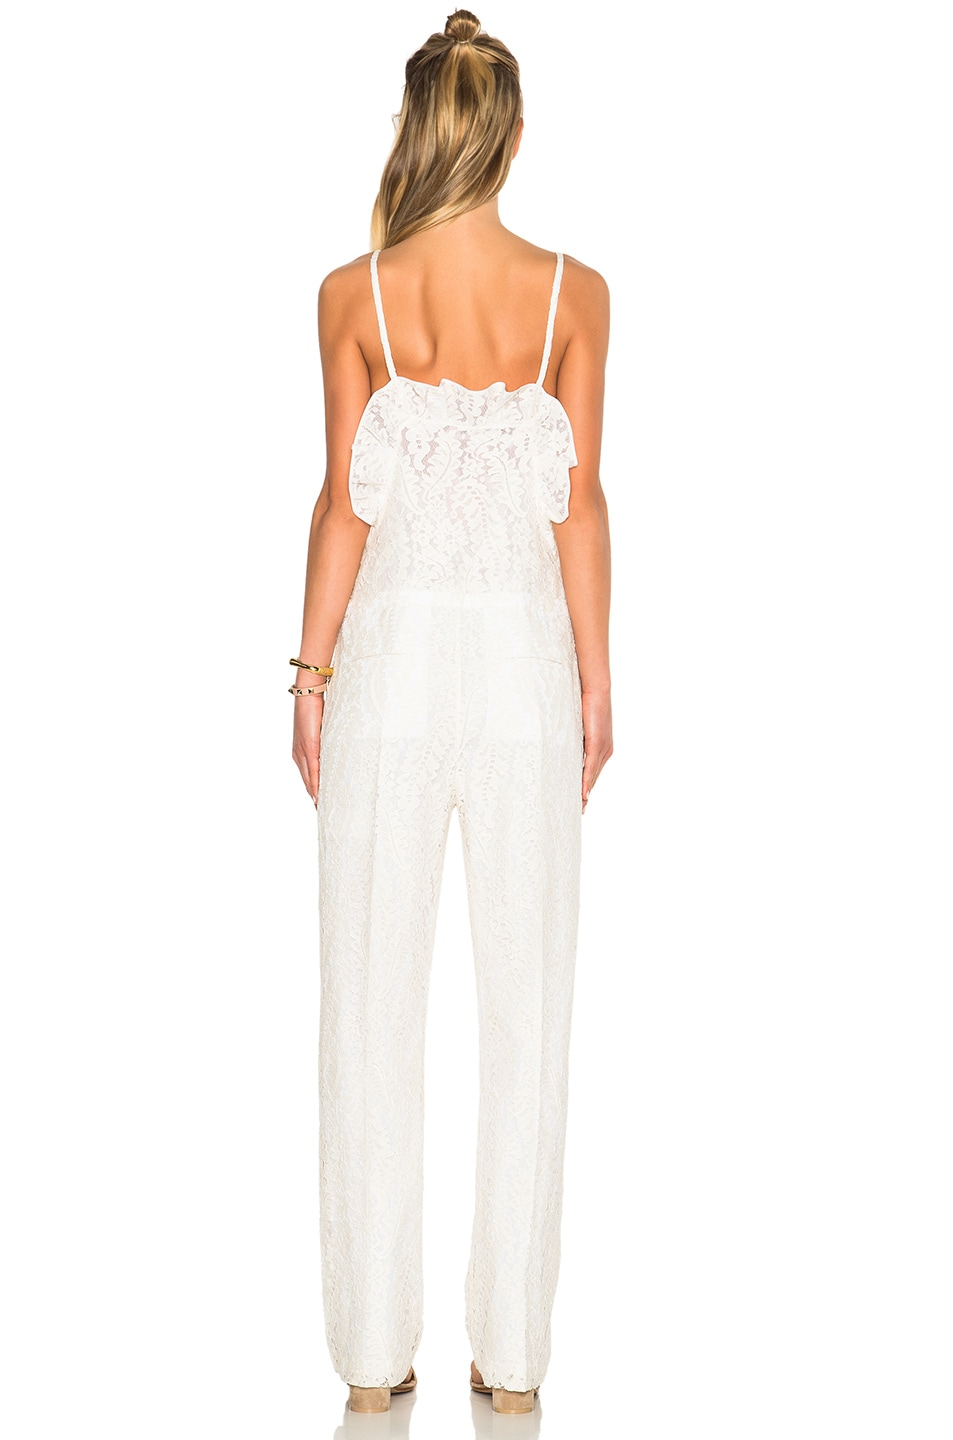 Image 4 of No. 21 Jumpsuit in White